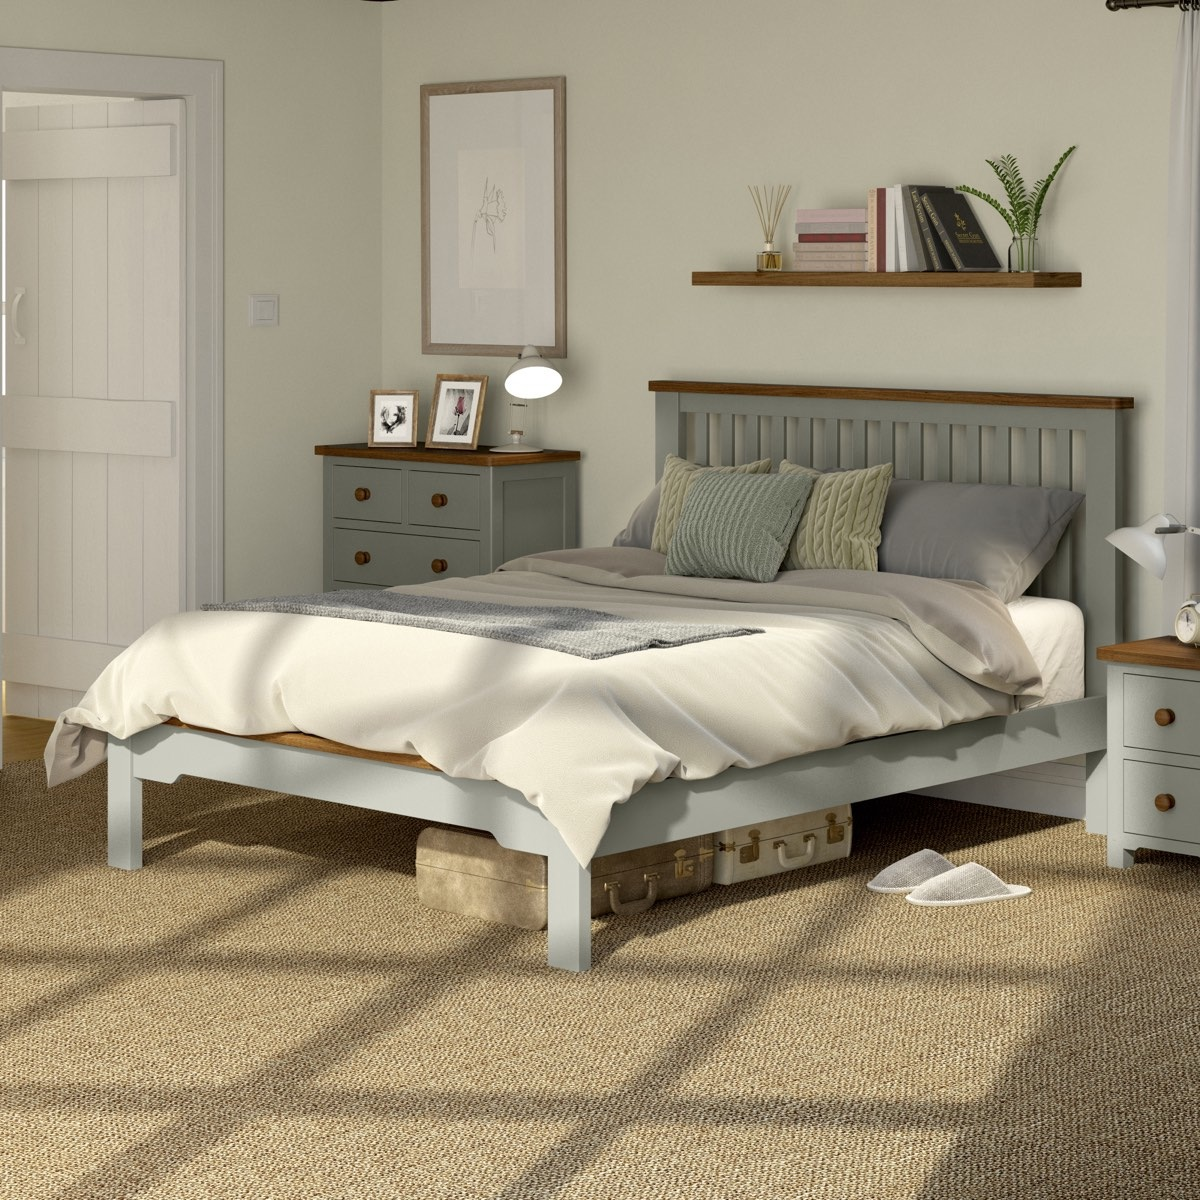 Rome oak and mellow sage king size bed